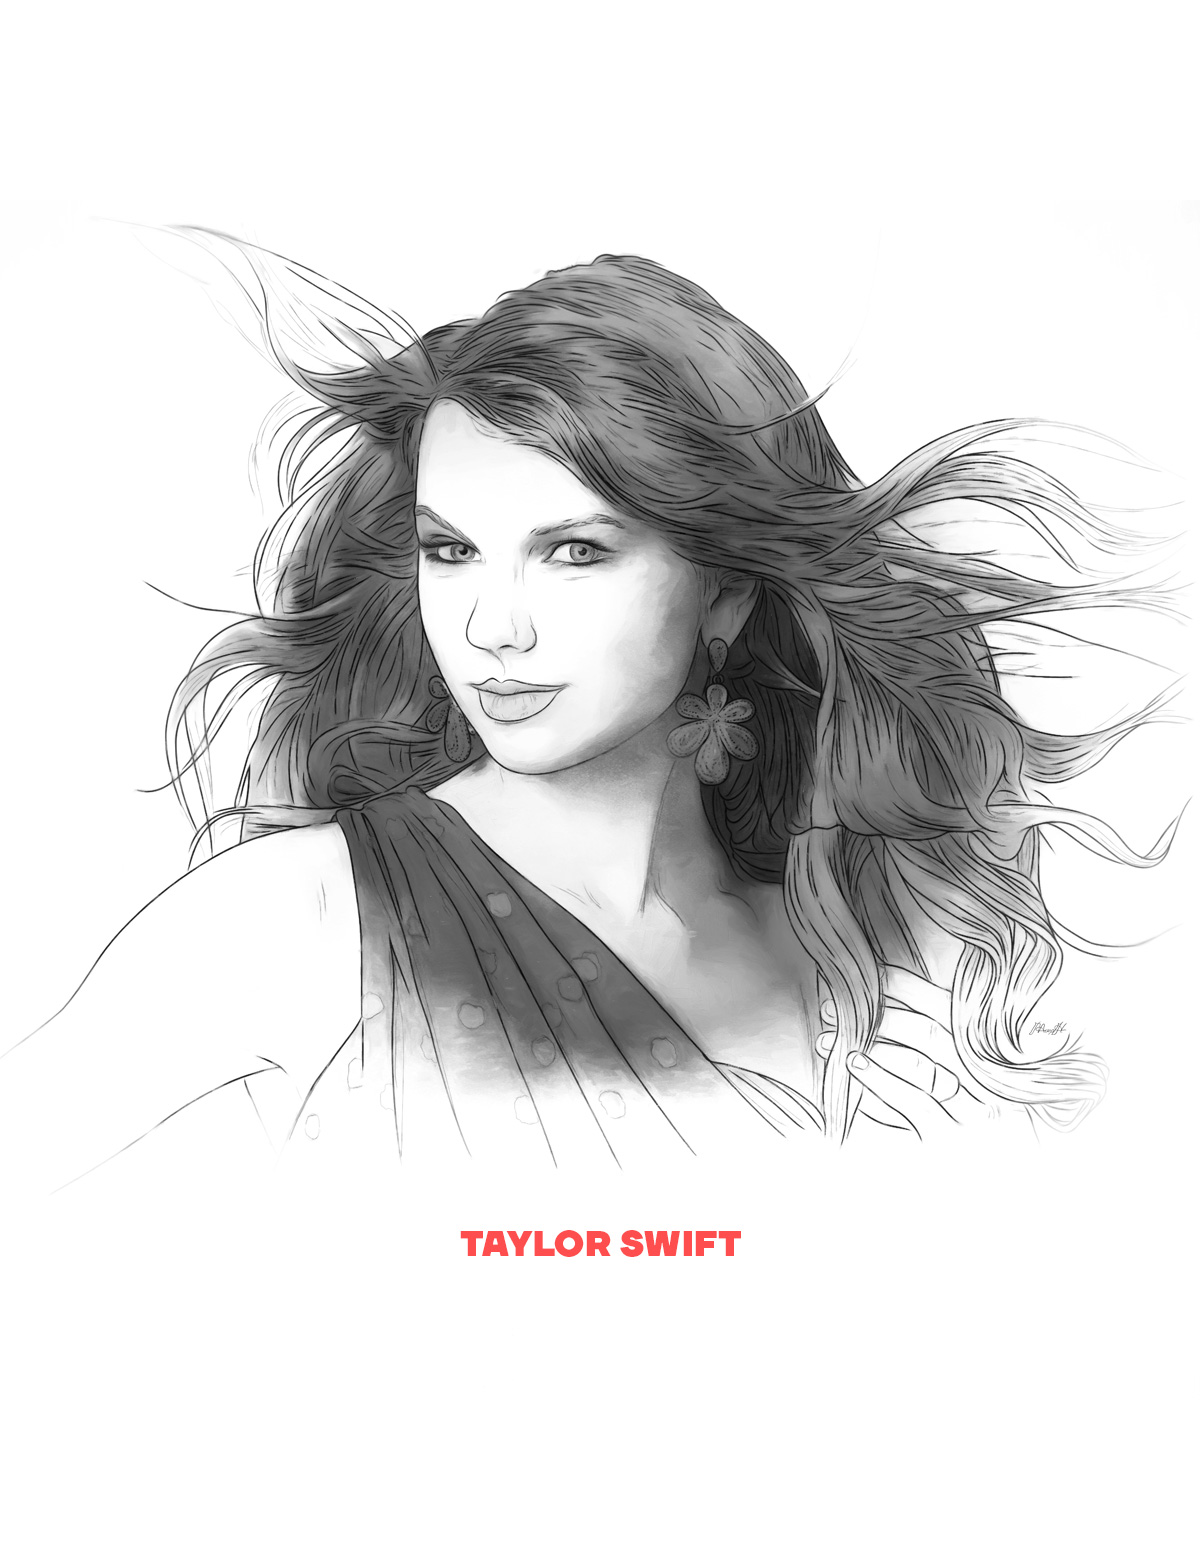 Taylor Swift portrait from People of 2016 series, by Max Hancock